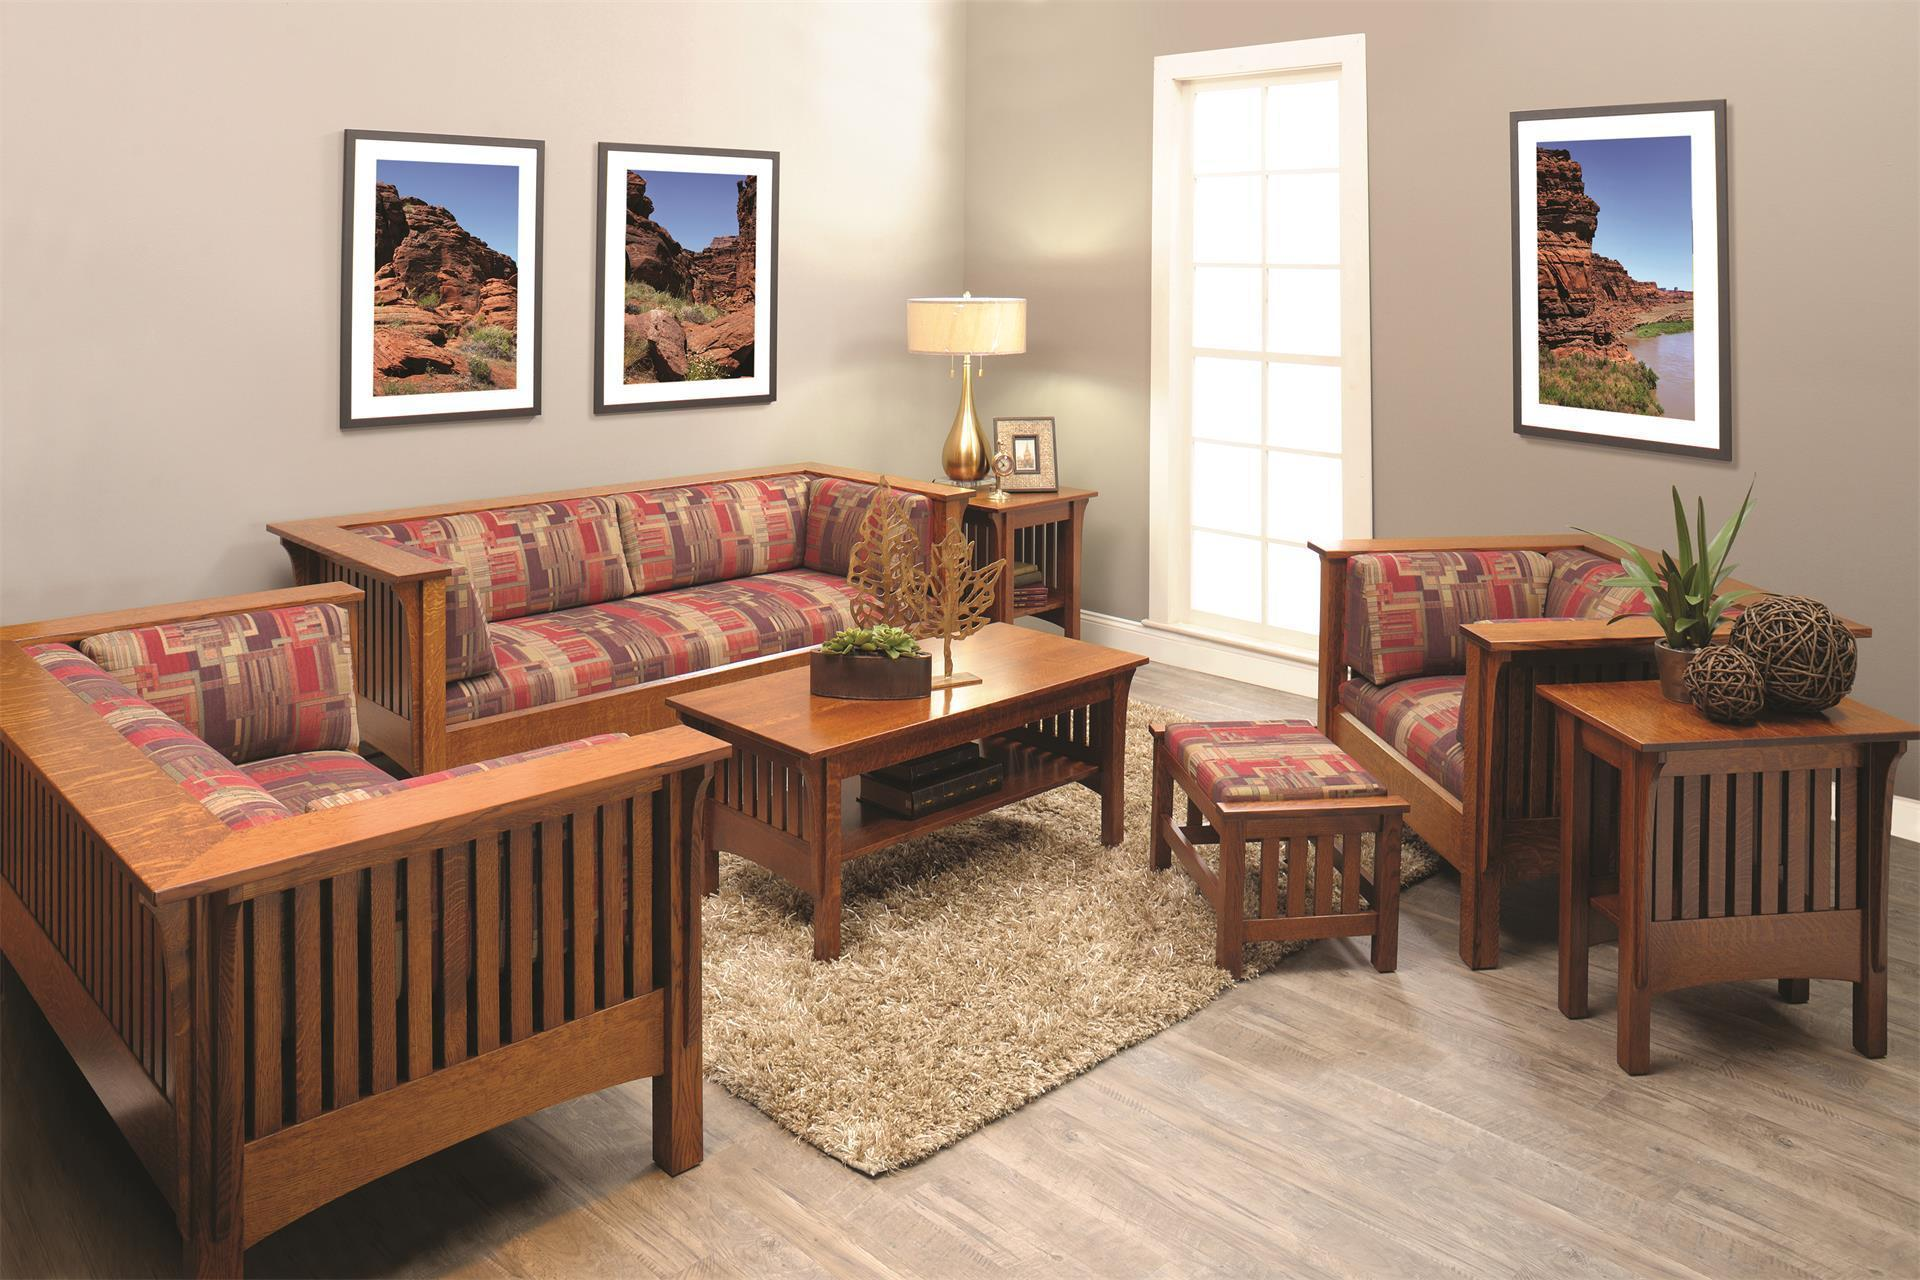 Rustic Mission Style Furniture